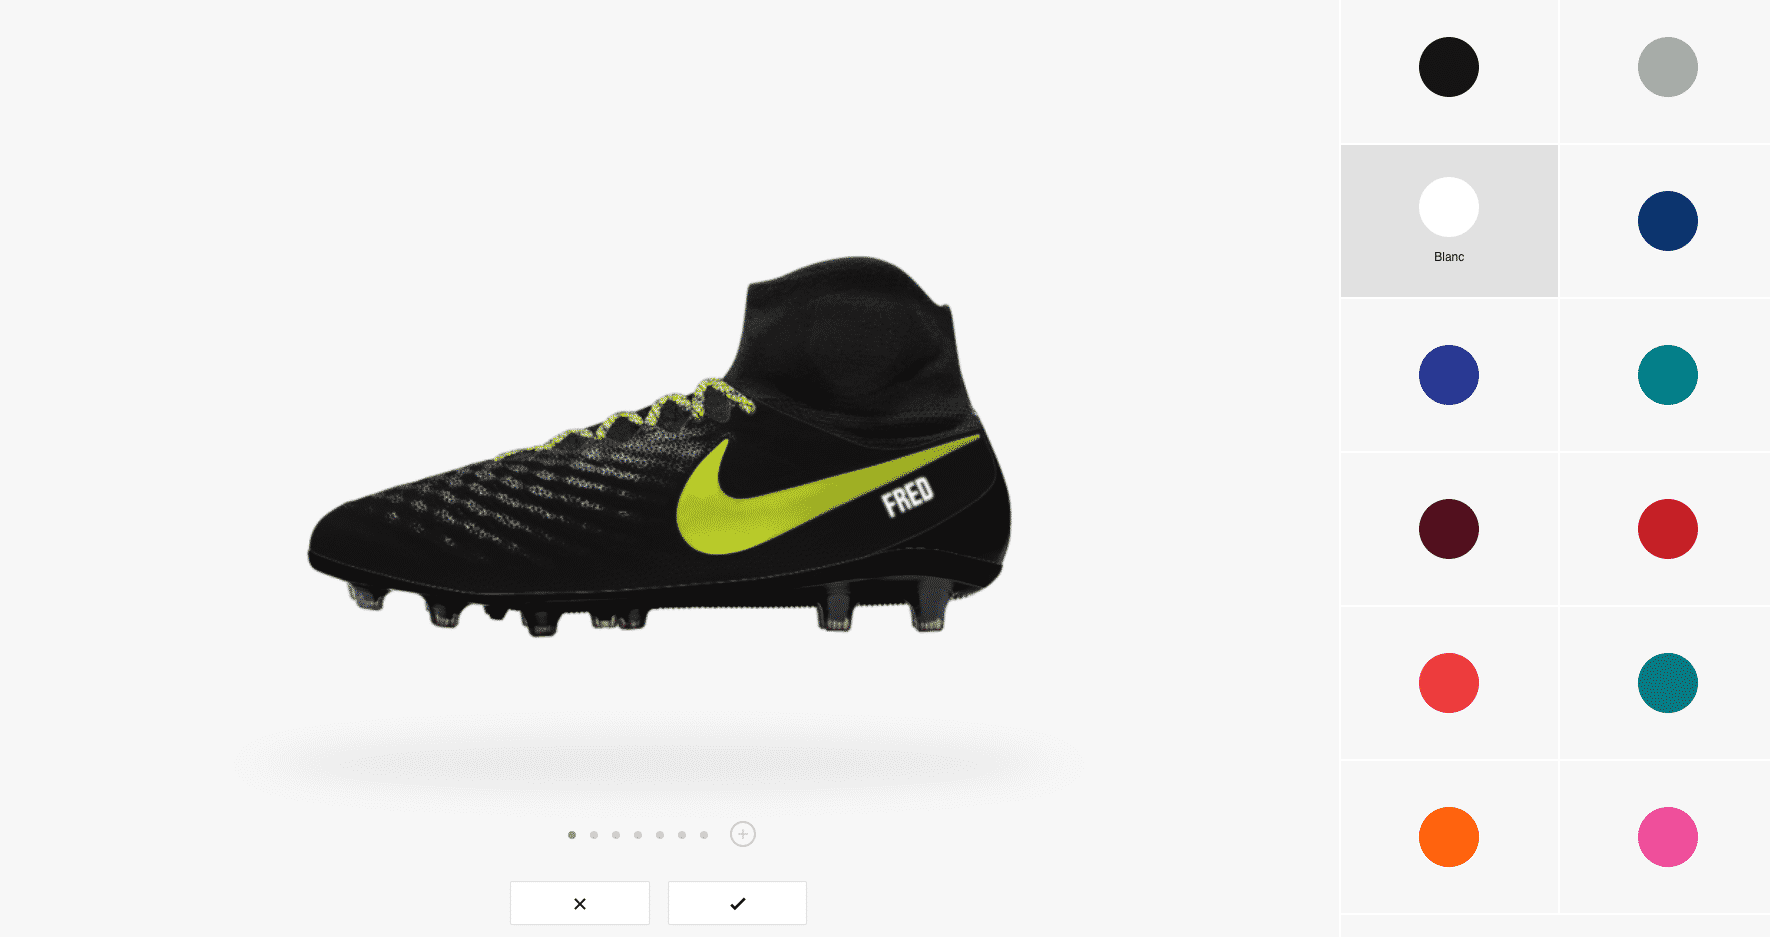 chaussure-football-nike-tech-craft-id-img6